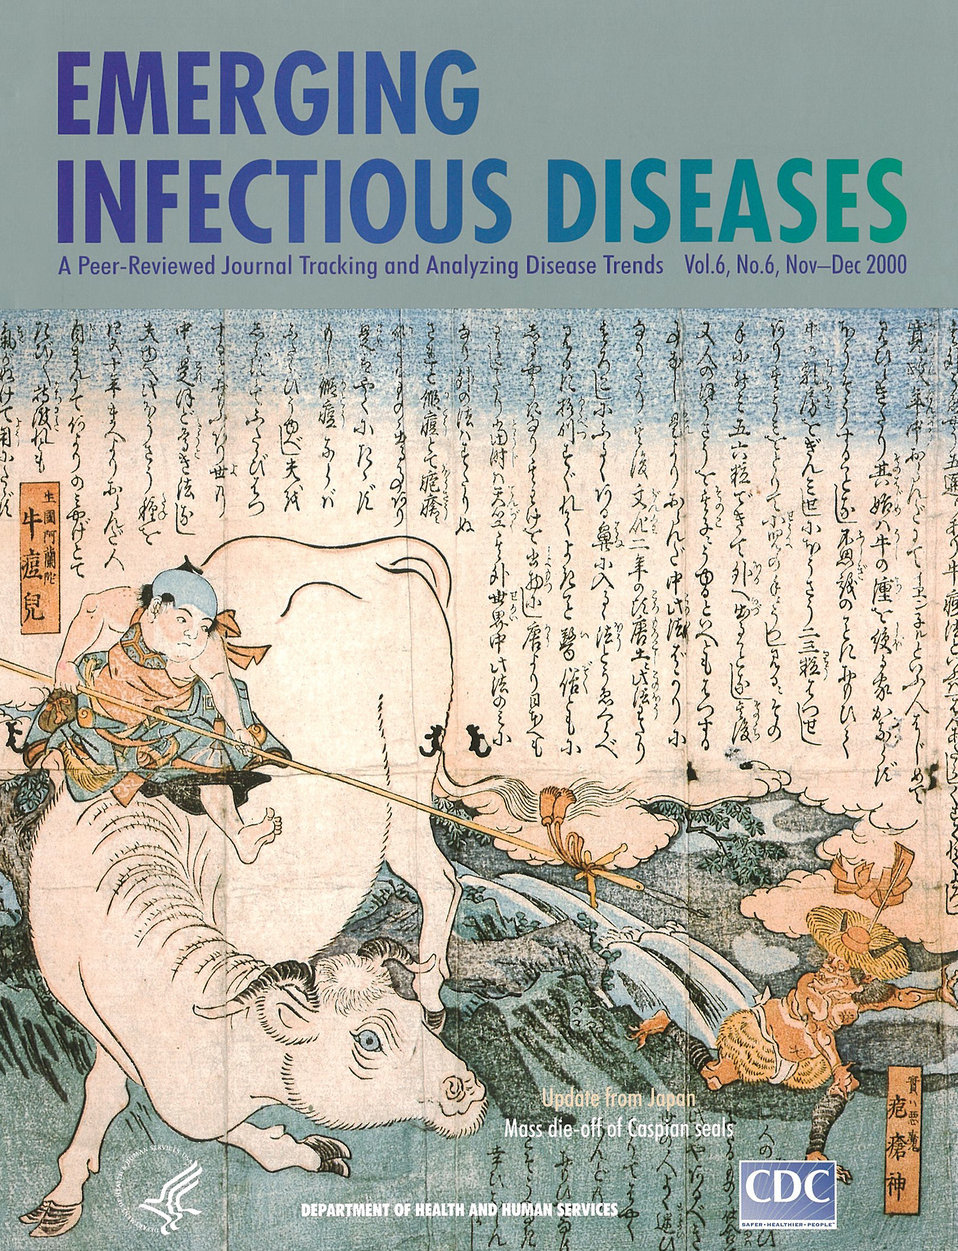 Emerging Infectious Diseases (EID) cover artwork for Volume 6, Number 6, November-December 2000 issue.